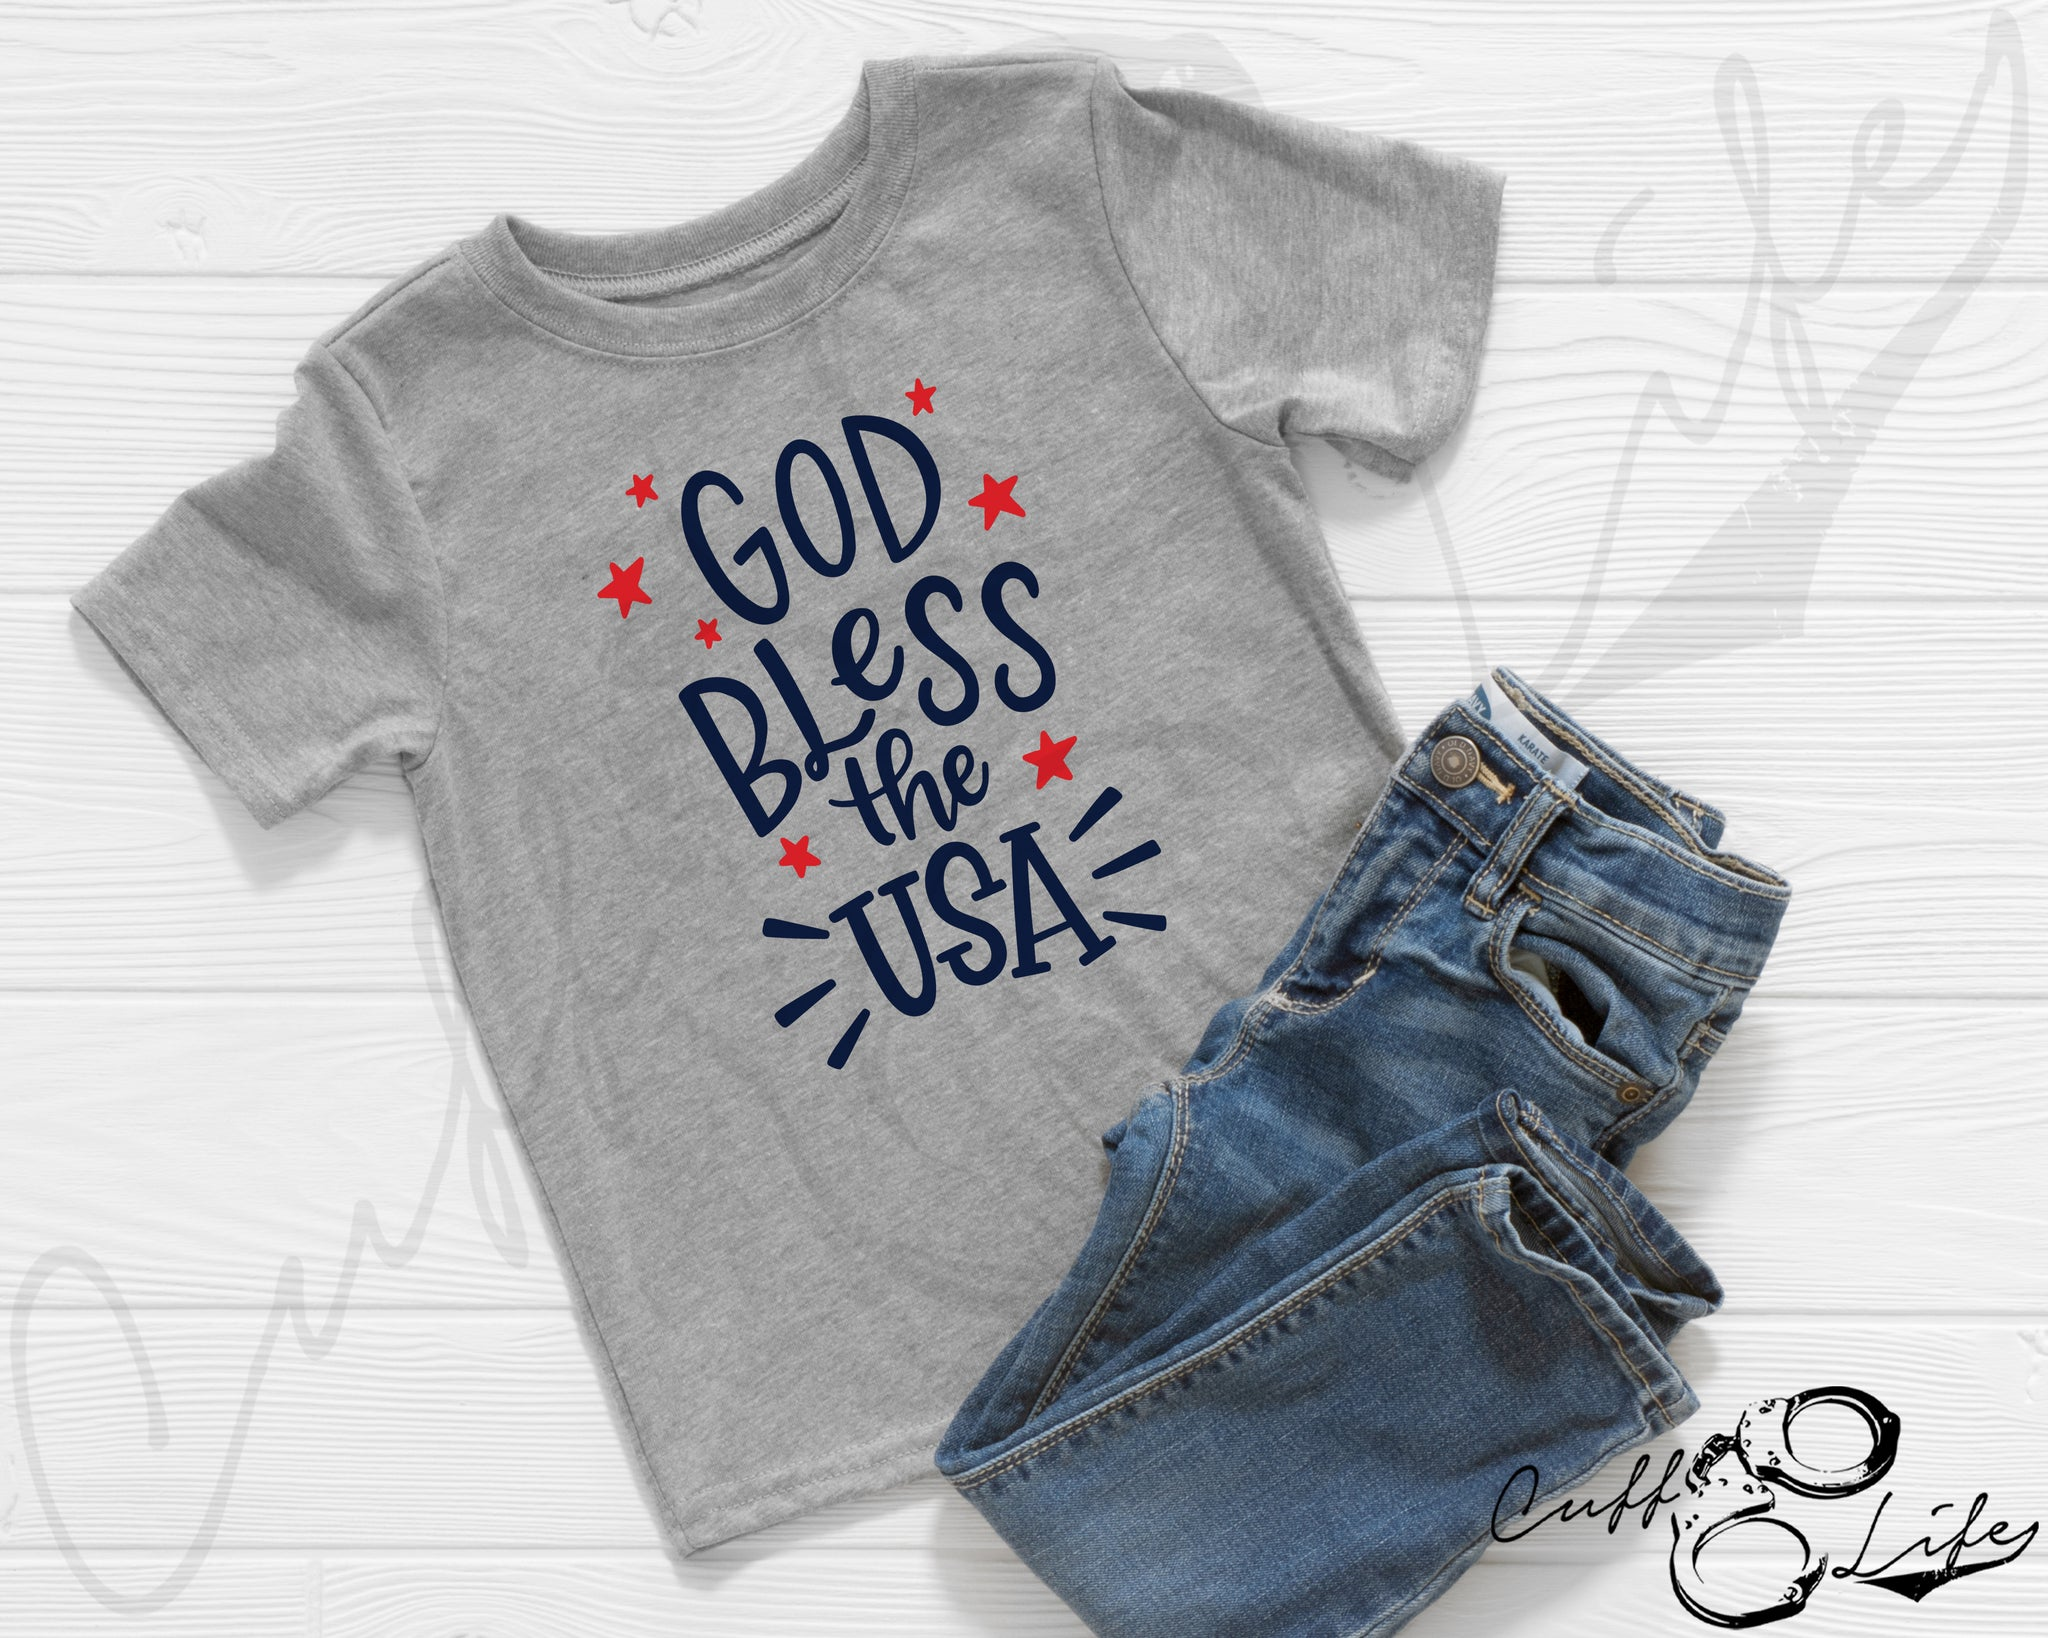 God Bless the USA - Toddler/Youth T-Shirt